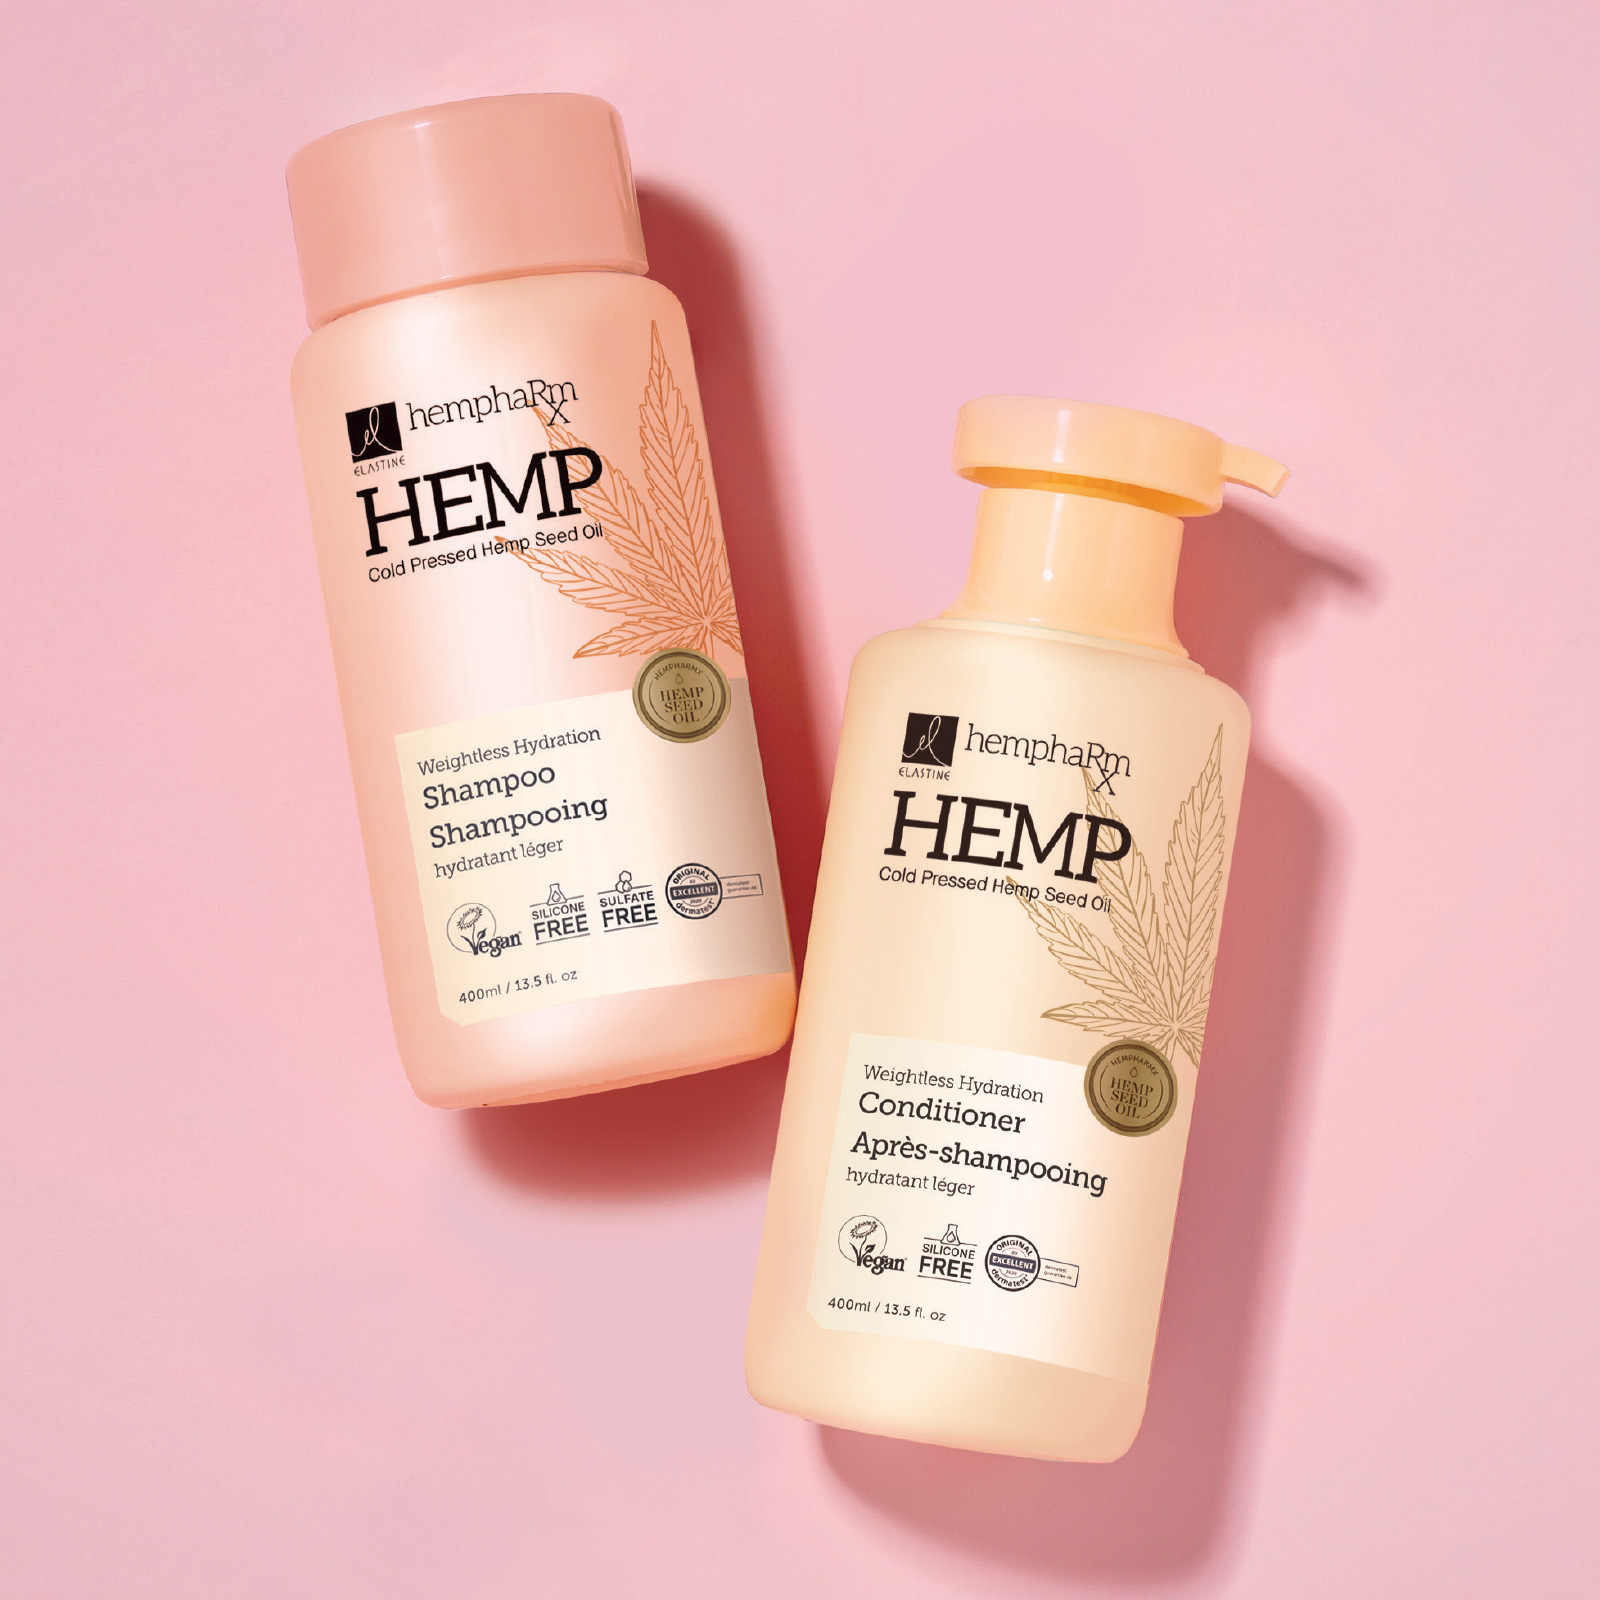 Dry air, dry hair? Try hemp for hair! Elastine Hempharmx shampoo and conditioner contain cold extracted hemp oil rich in omega 3-6-9 to help moisturize and nourish hair while preventing breakage. See the difference these vegan formulas can do for your hair.